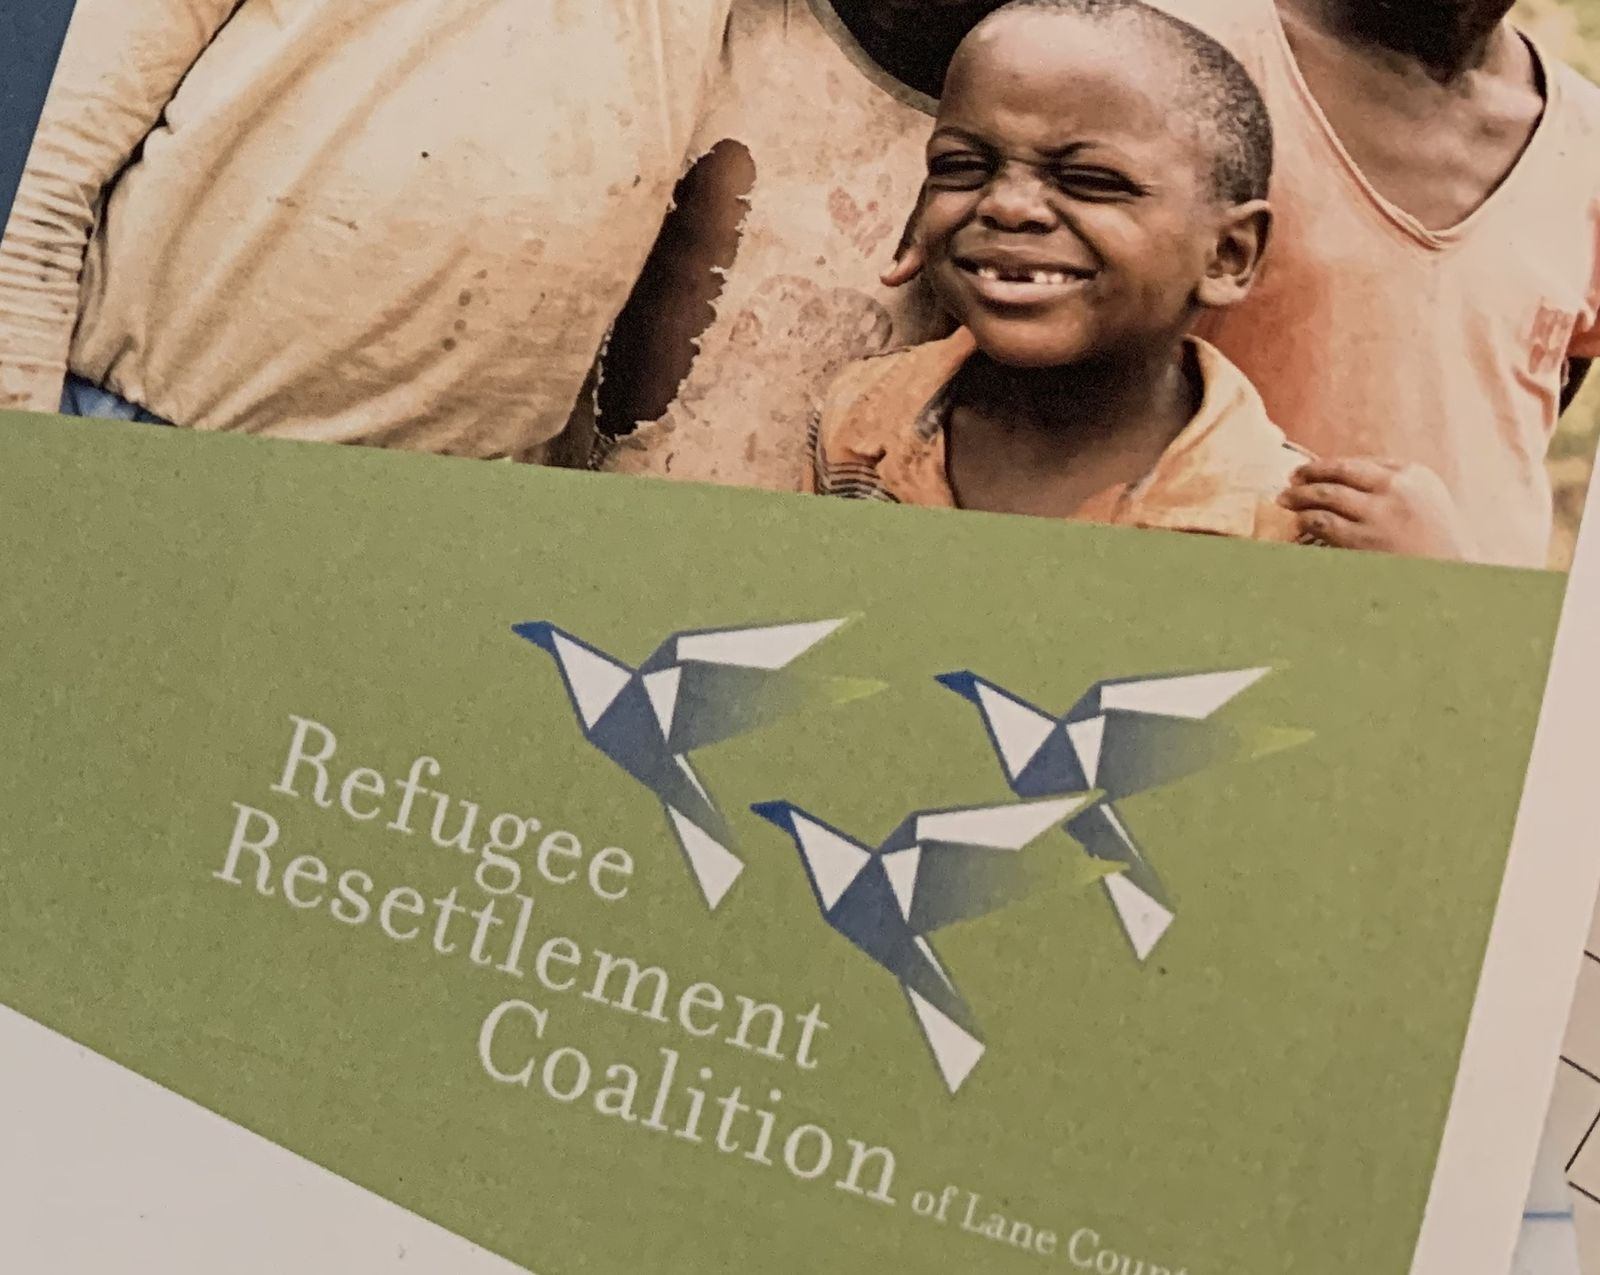 Fundraiser in Eugene looks to help refugees and asylum seekers (SBG)